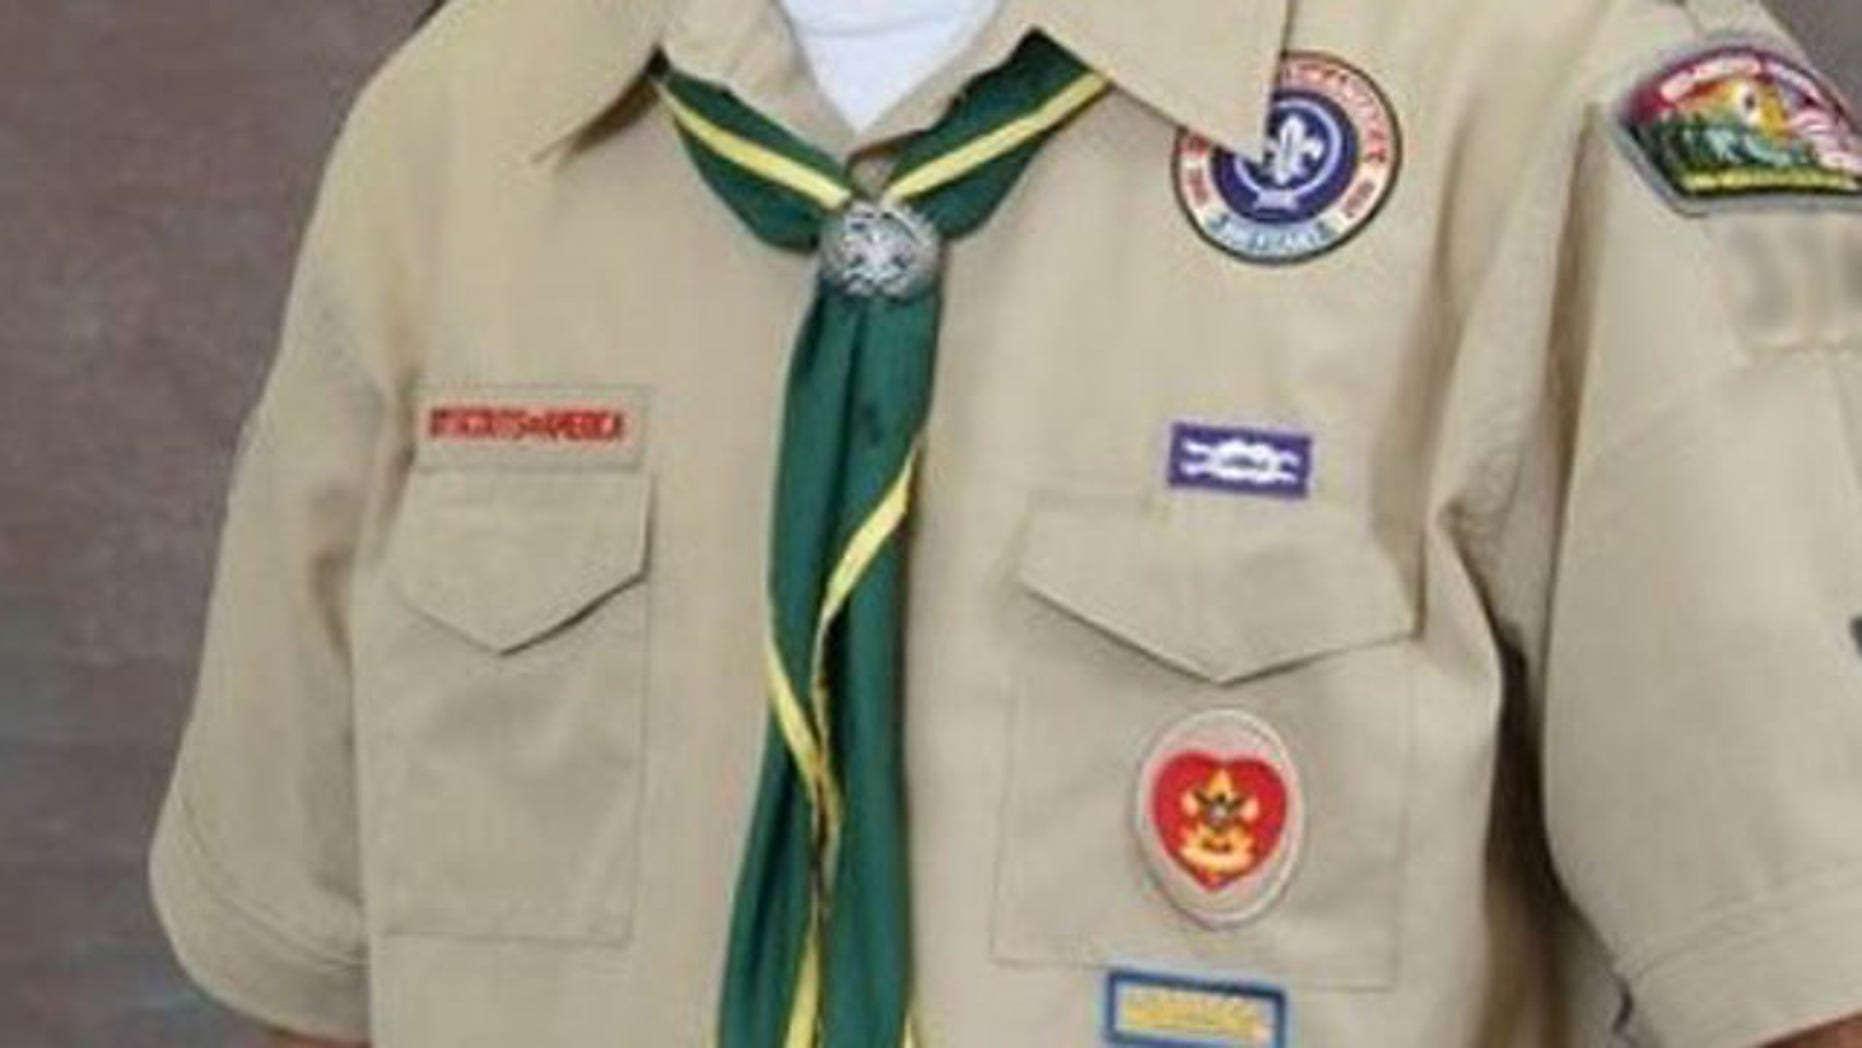 For decades, the Boy Scouts of America kept the names of accused molesters quiet.